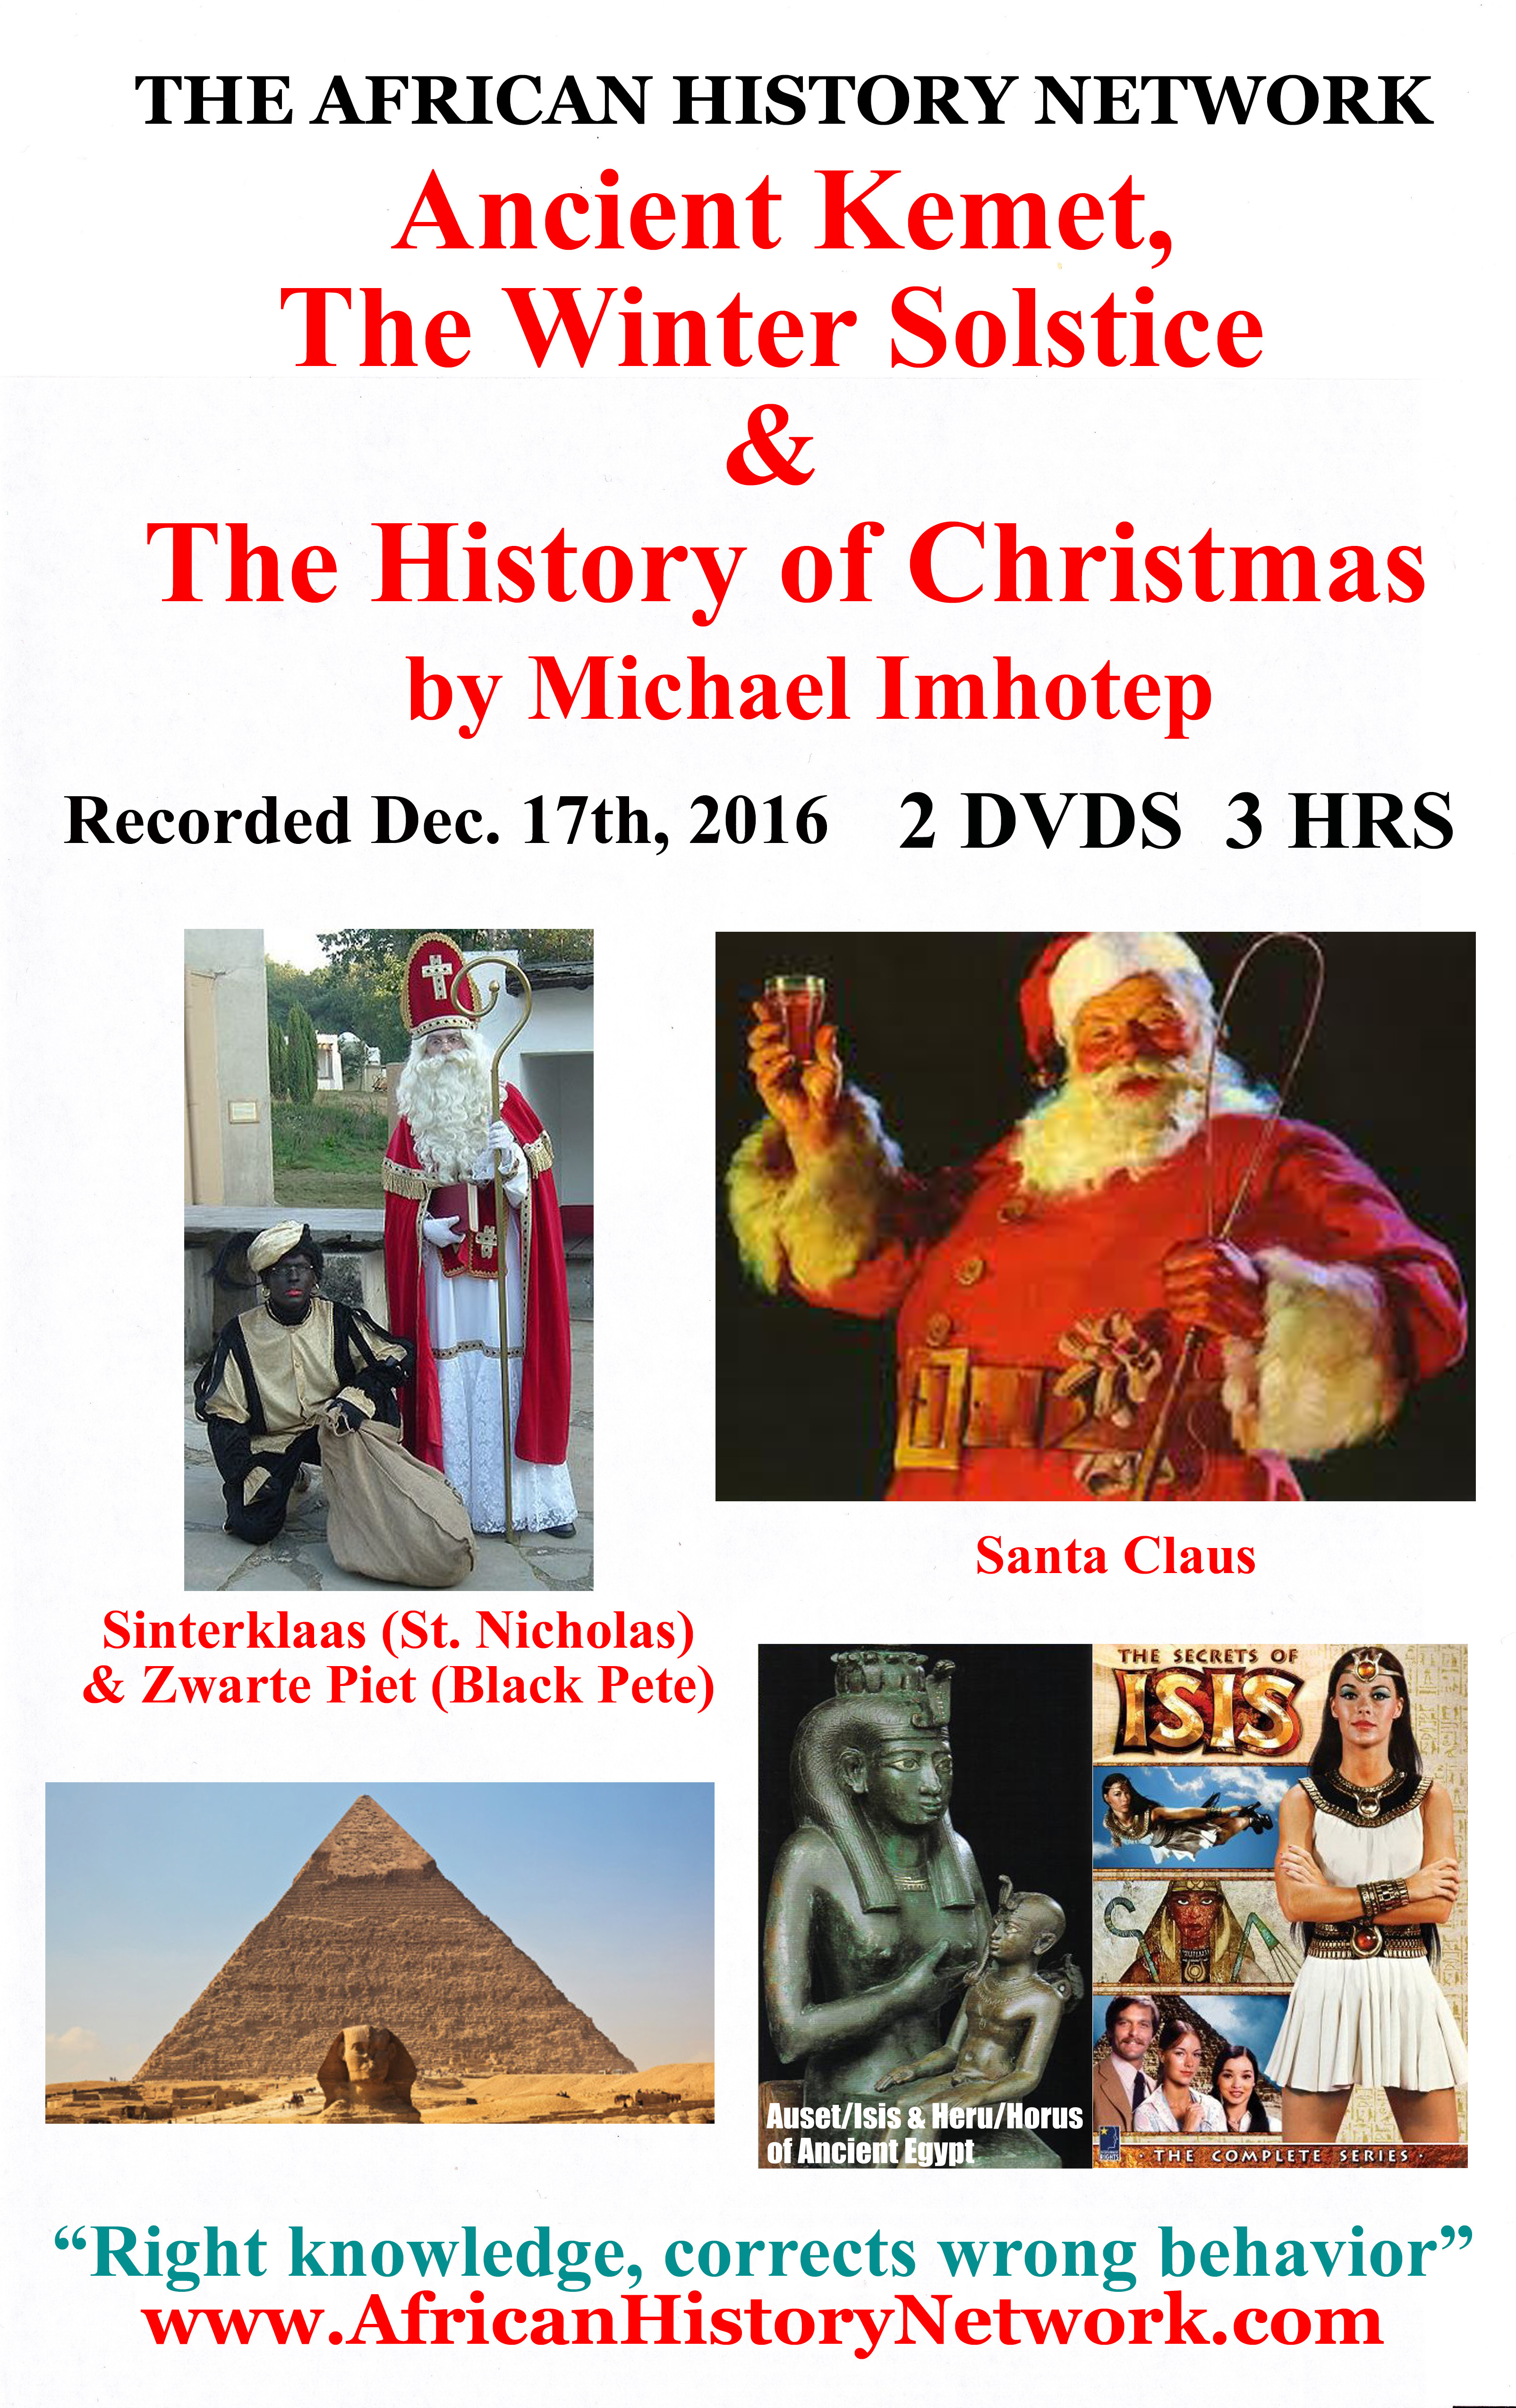 Ancient_Kemet_The_History_of_Christmas_12-17-16_-_DVD_Insert_Label_Front